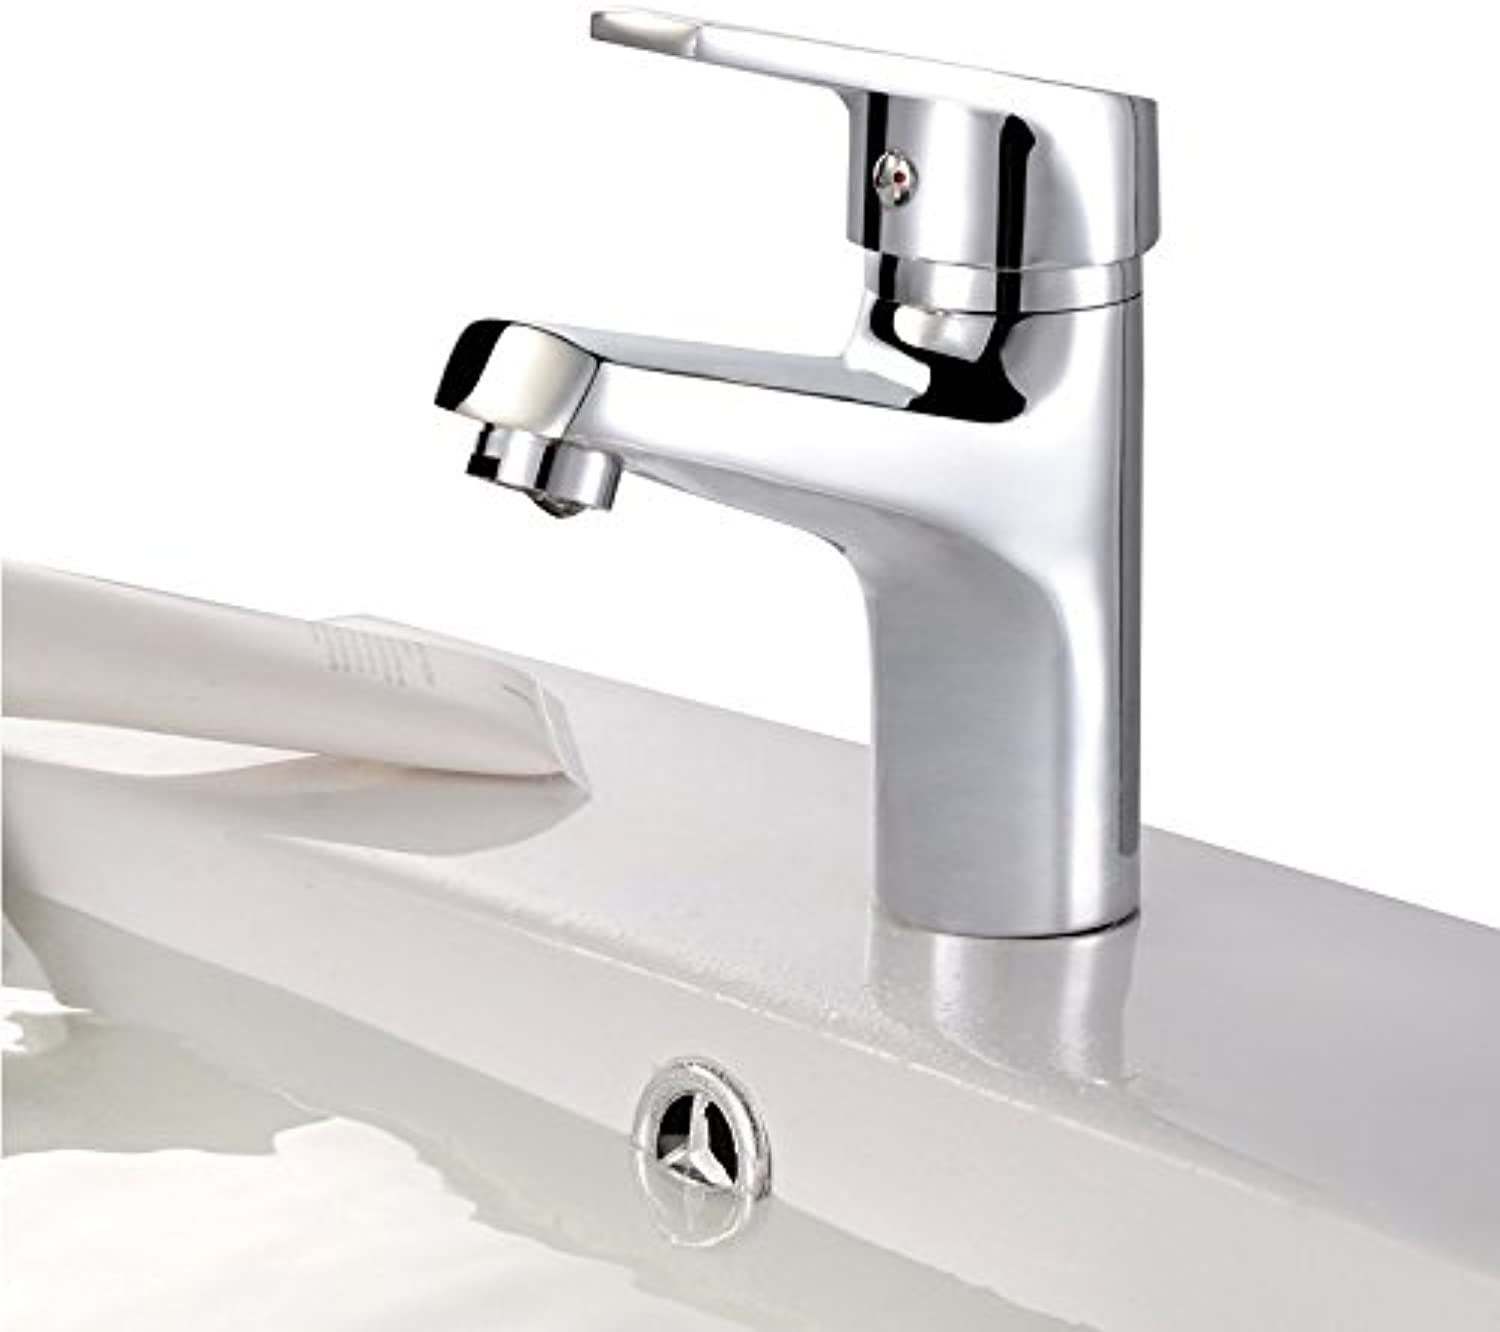 Decorry Full Copper Single Hole Cold and Hot Water Basin Faucet